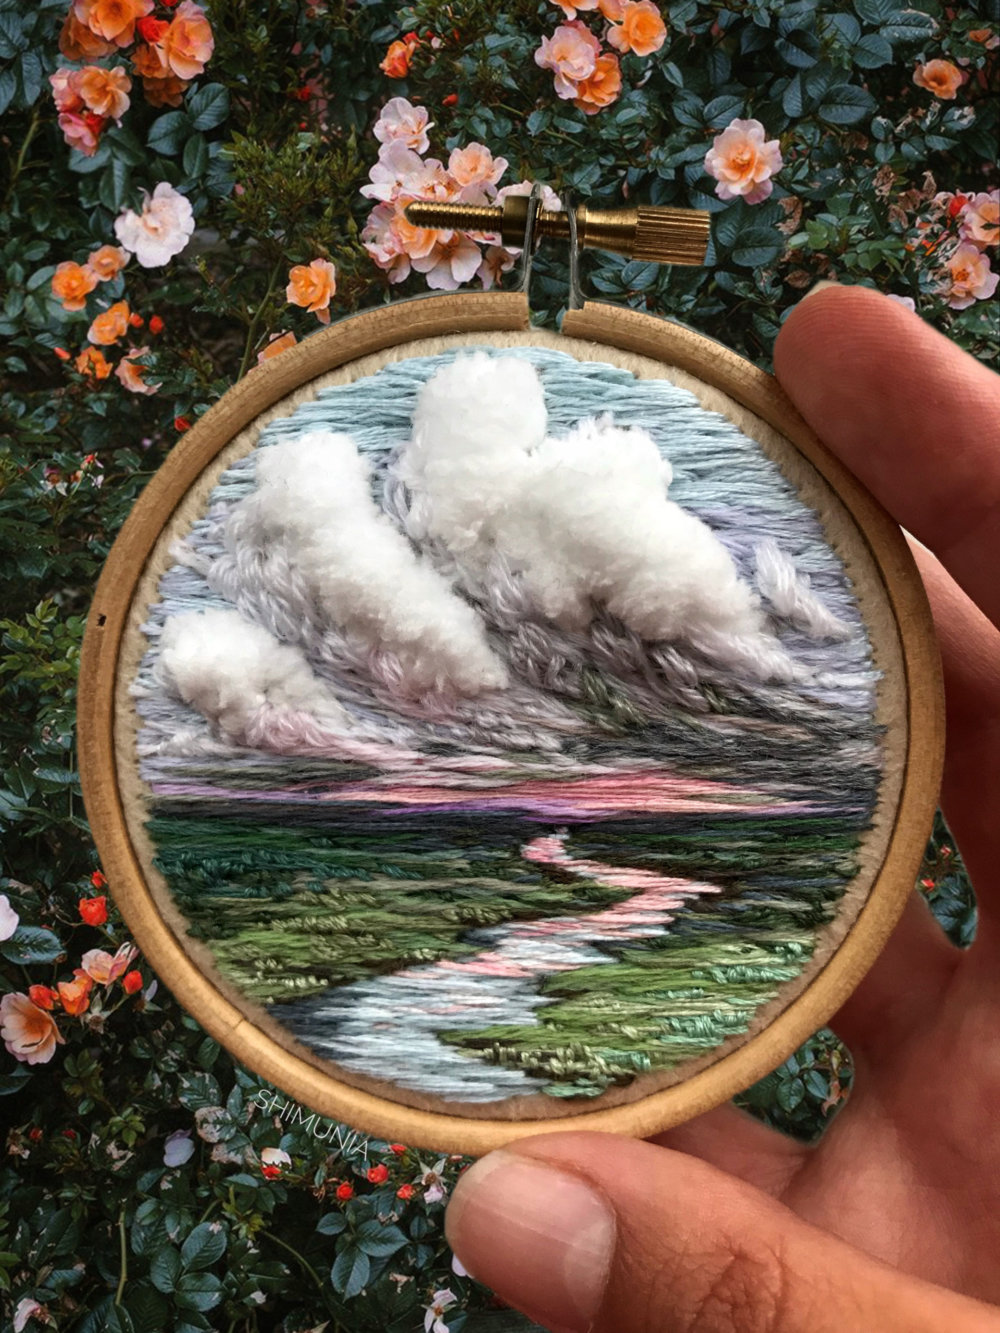 Lush Embroidery Hoop Art Of Landscapes In Vivid Colors By Vera Shimunia 2